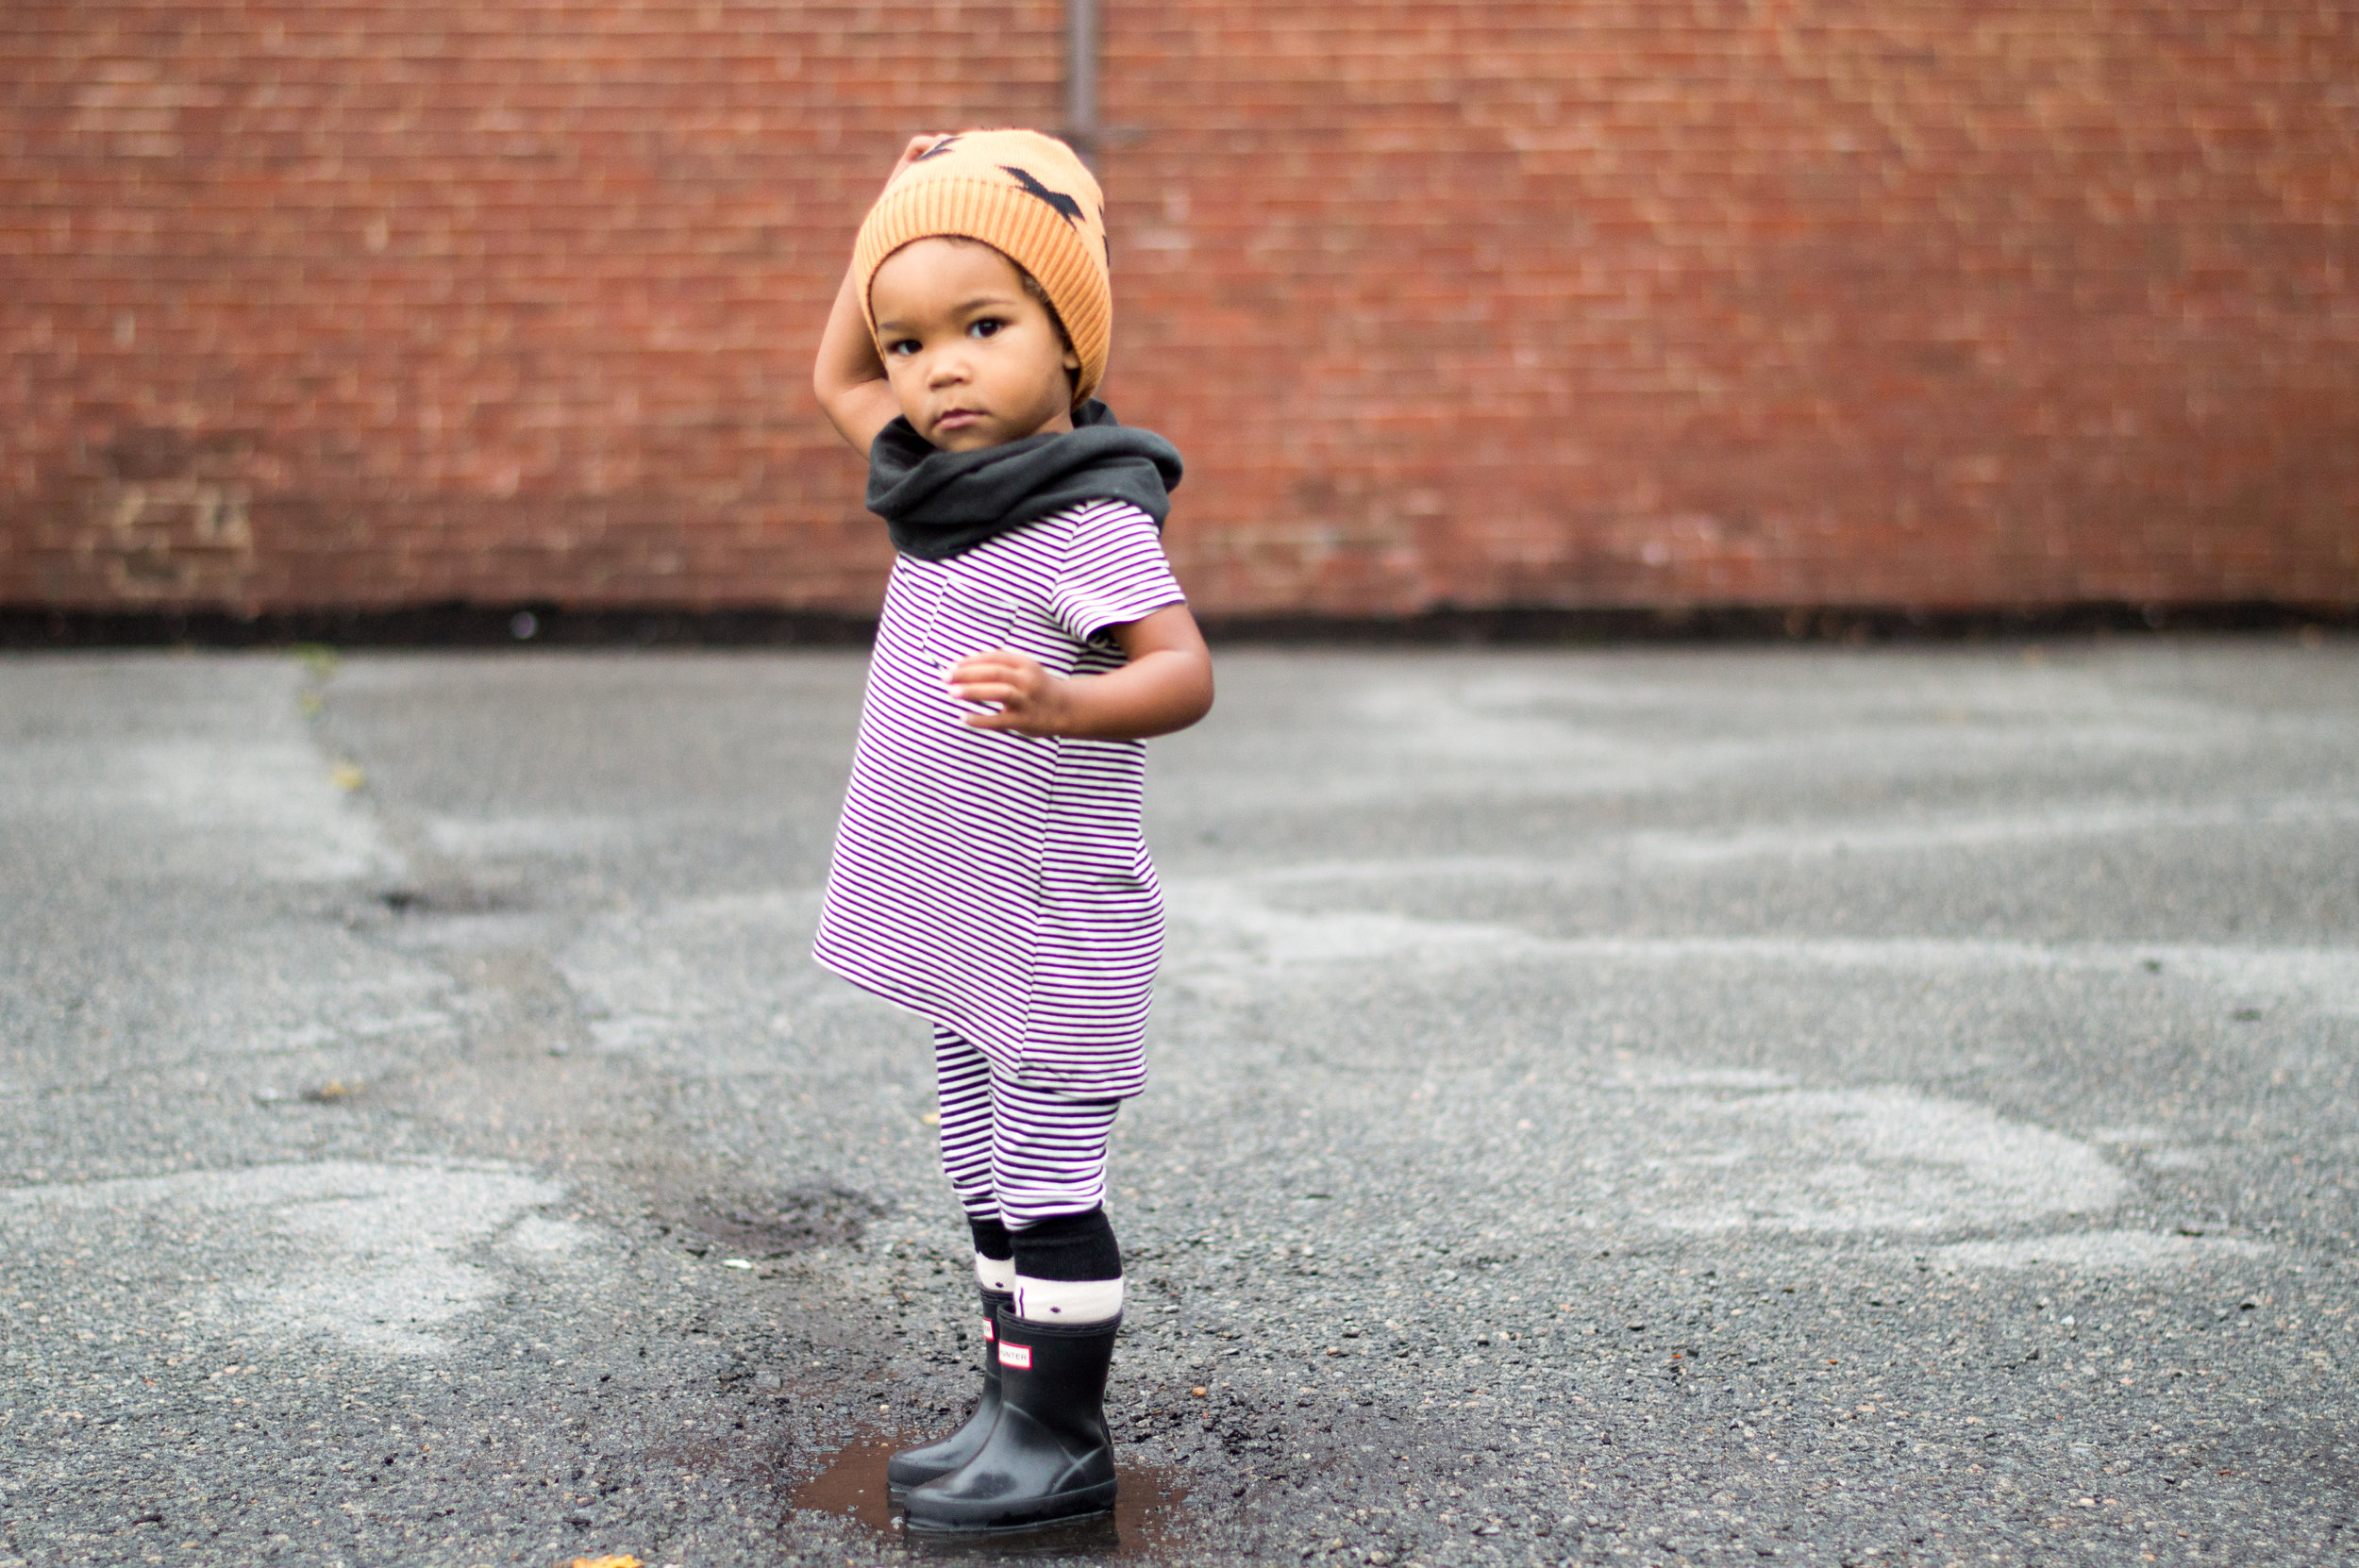 a6fef1f6 hat & socks: tiny cottons from a gifted baby scarf: gray label from